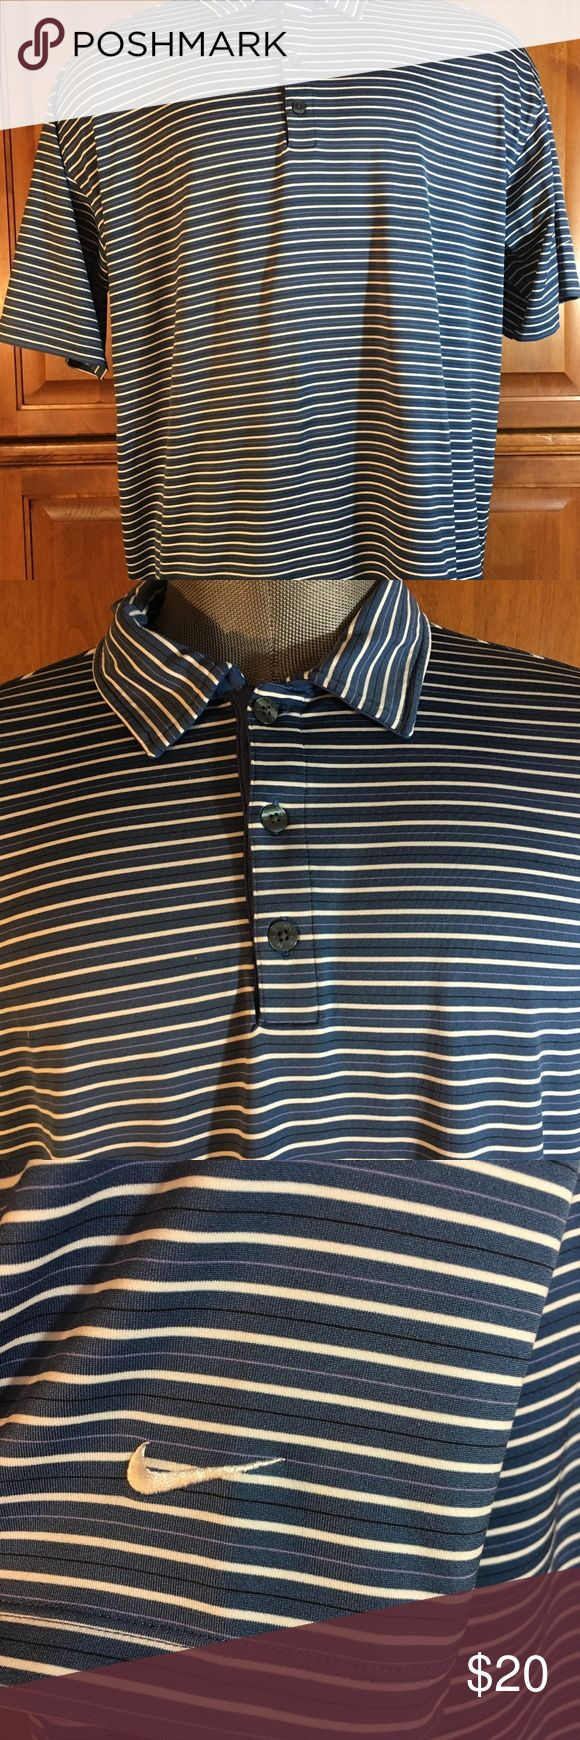 ♻️ Nike Mens striped golf Polo Shirt Size Xl Nike golf mens striped polo shirt  size - Xl  color - Blue/white  Excellent Condition Nike Shirts Polos